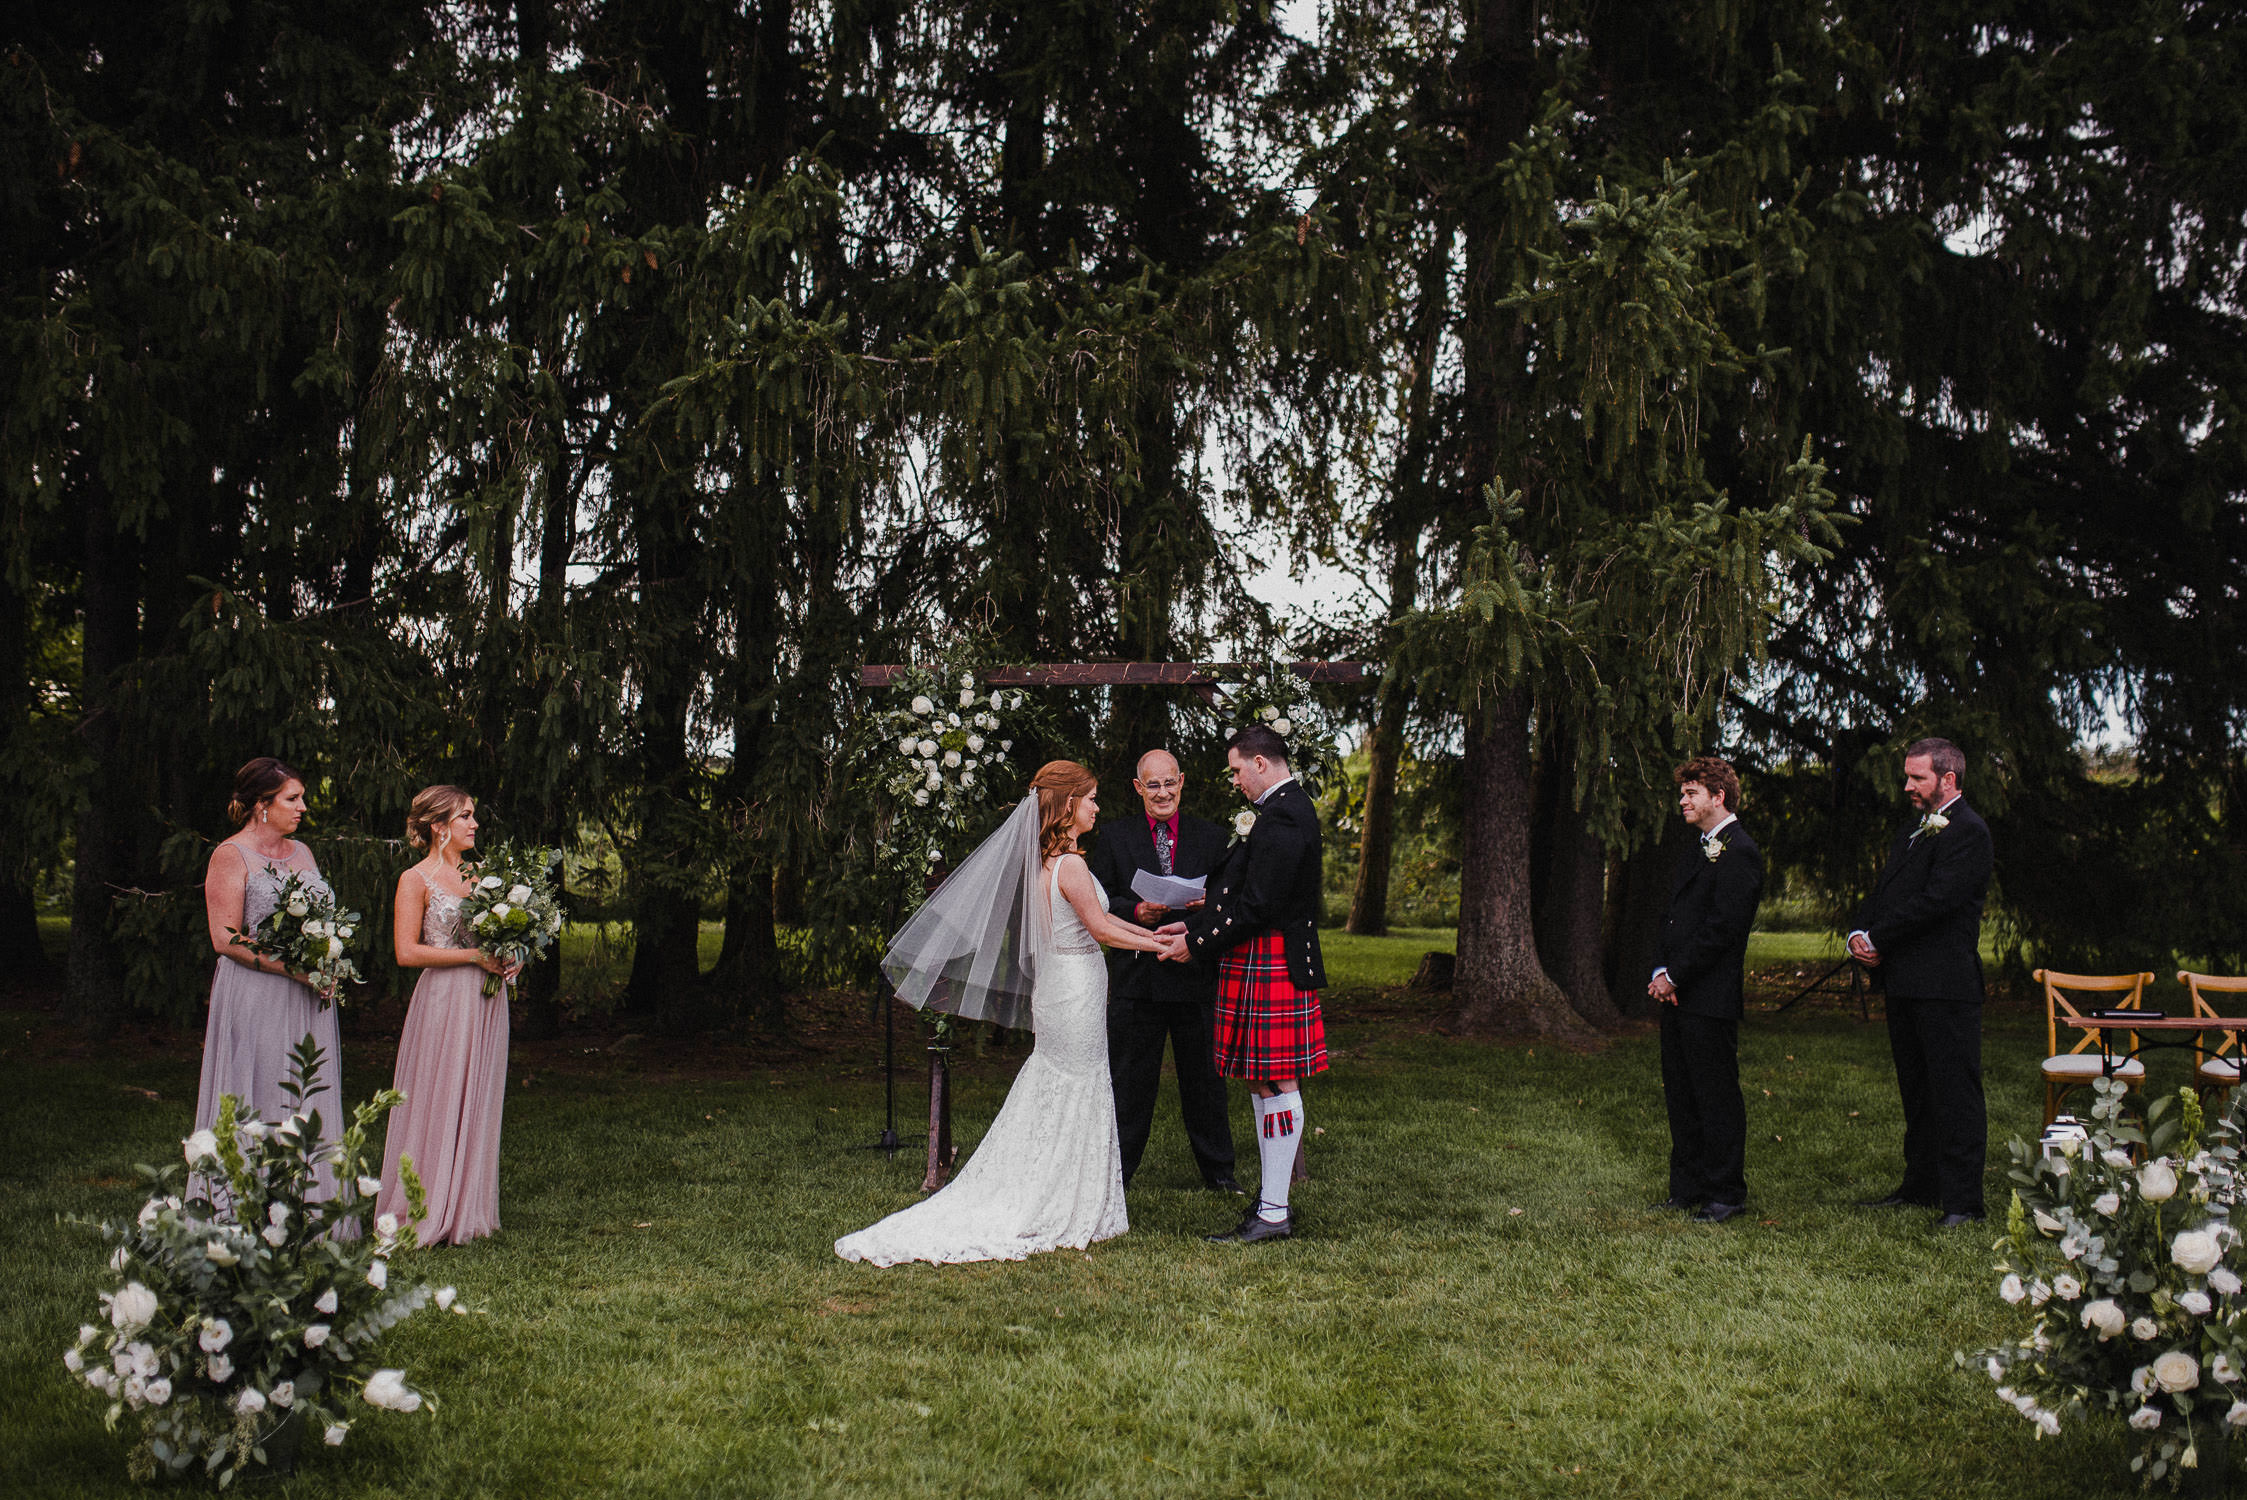 The bride and groom stand hand-in-hand at the alter during their wedding ceremony at Cambium Farm.